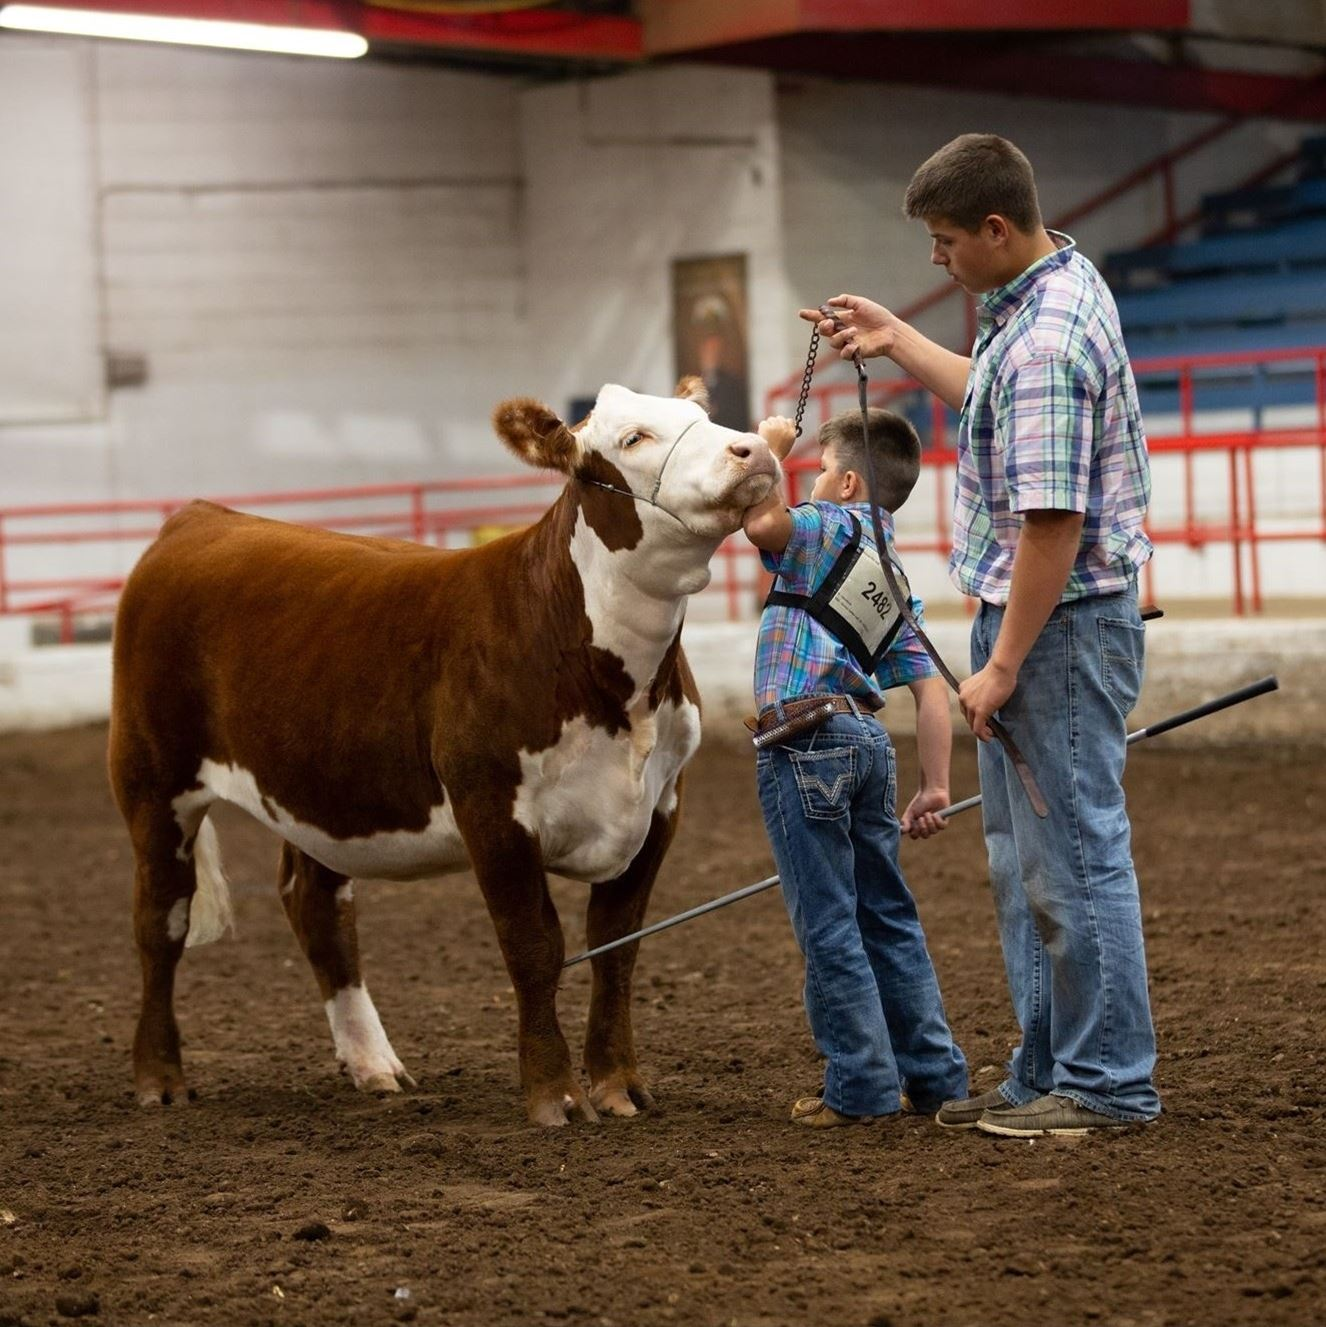 Bboy showing a red and white hereford heifer in an arena with the help of an older boy.